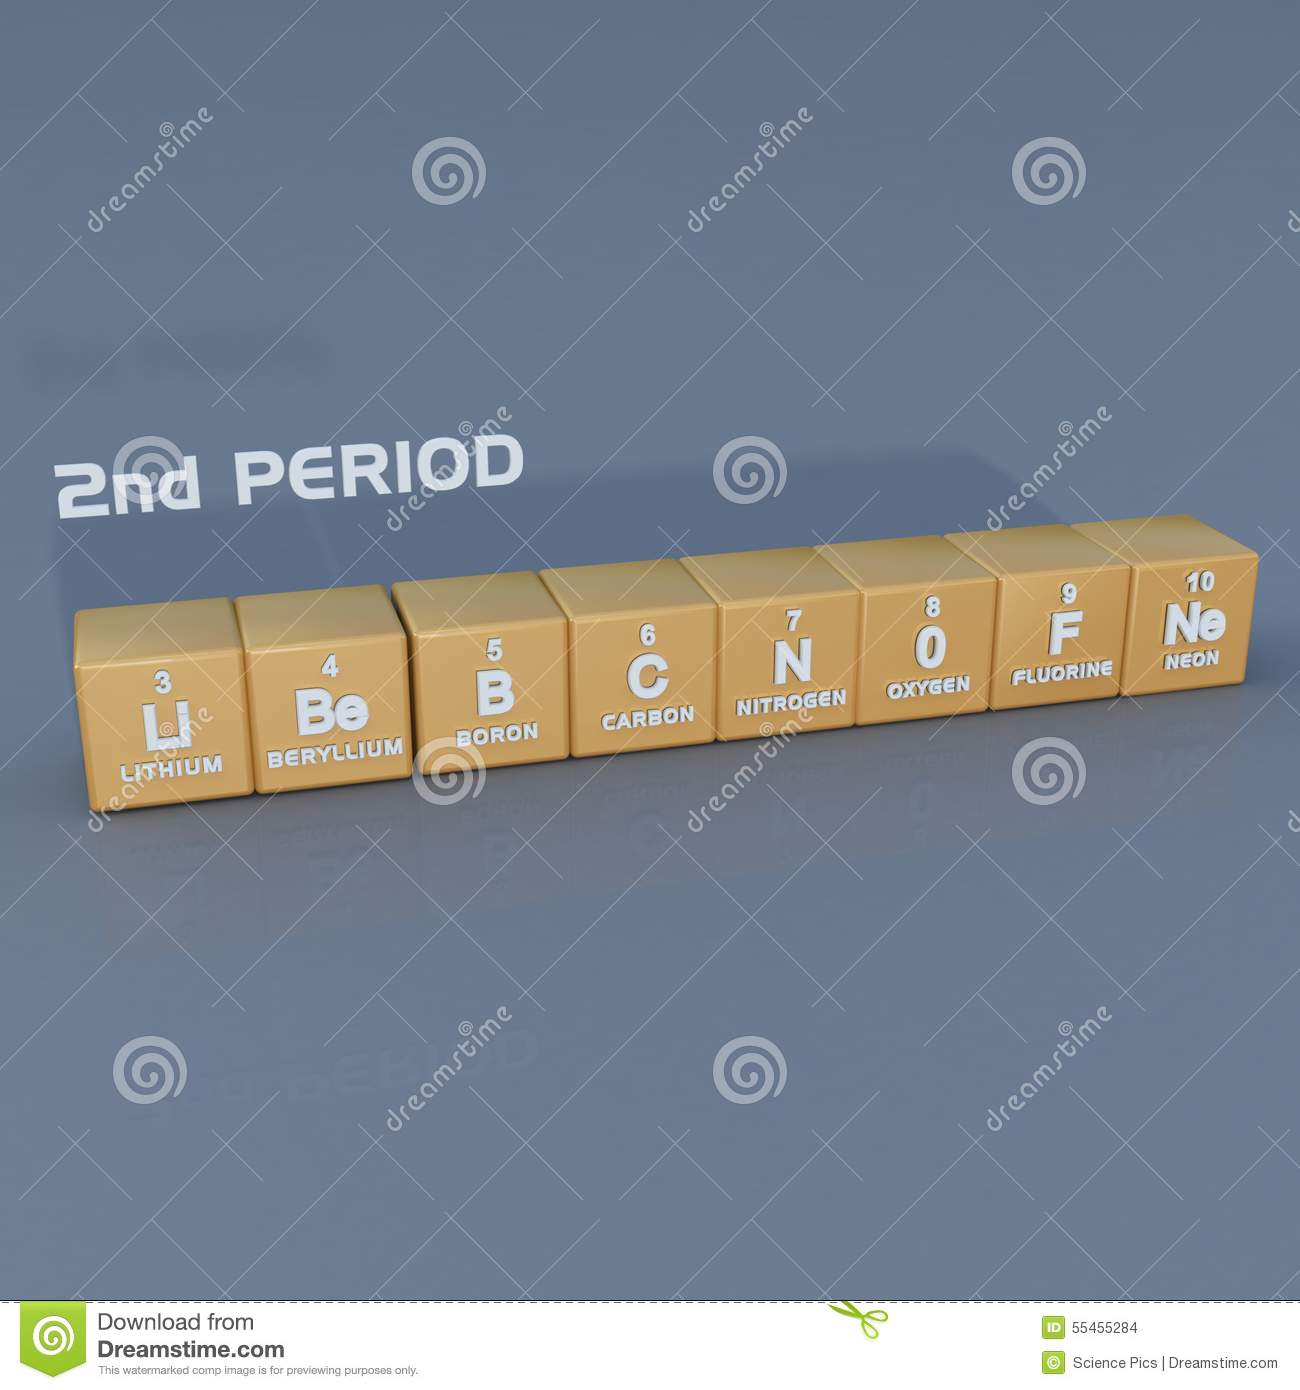 Periodic table 1st period stock illustration image of laboratory periodic table 2nd period stock images gamestrikefo Choice Image